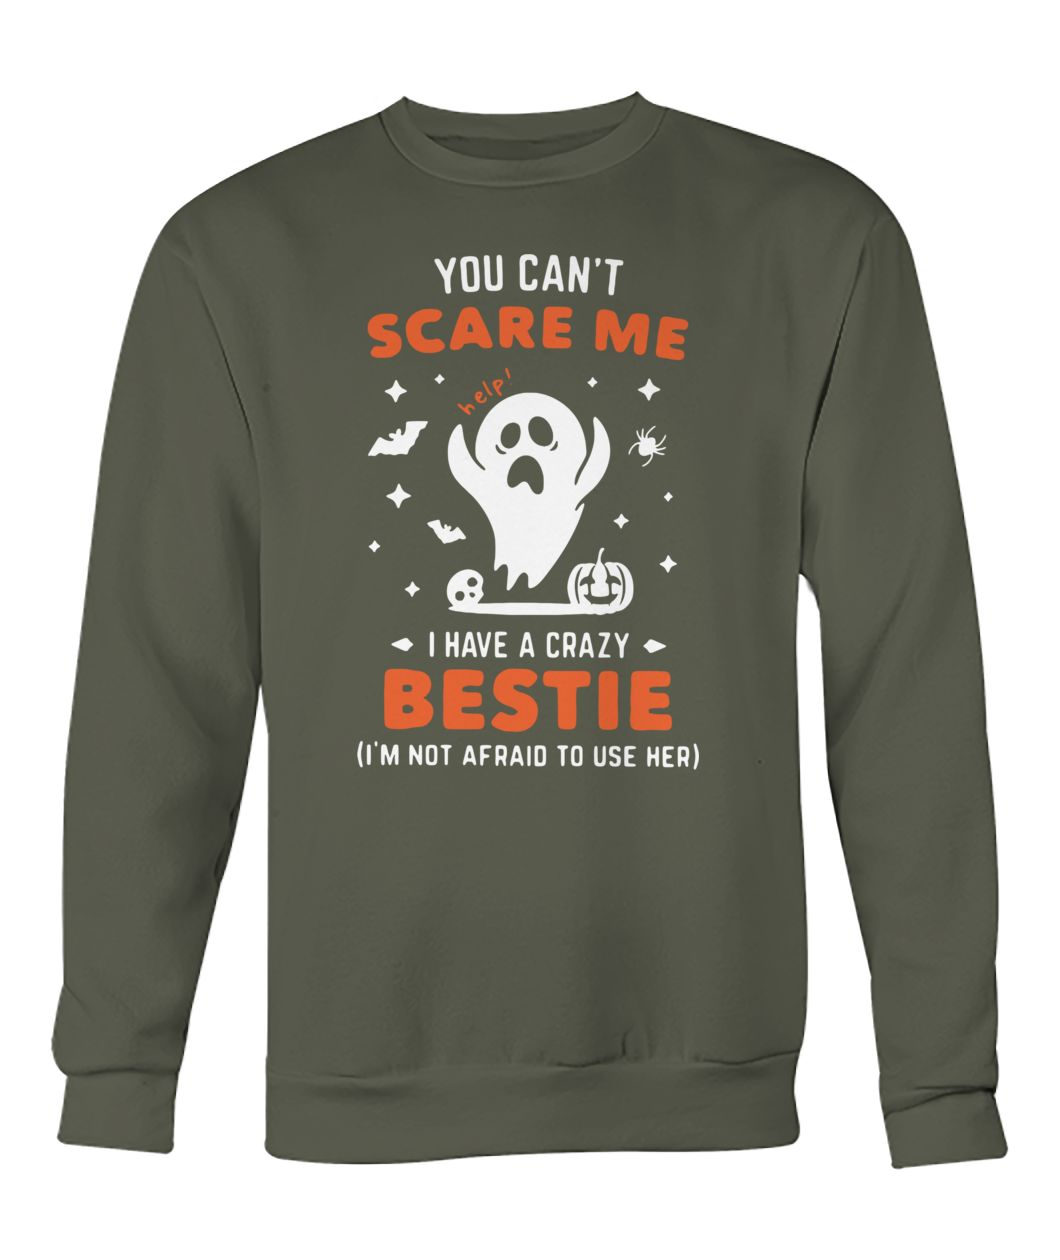 You can't scare me I have a crazy bestie crew neck sweatshirt